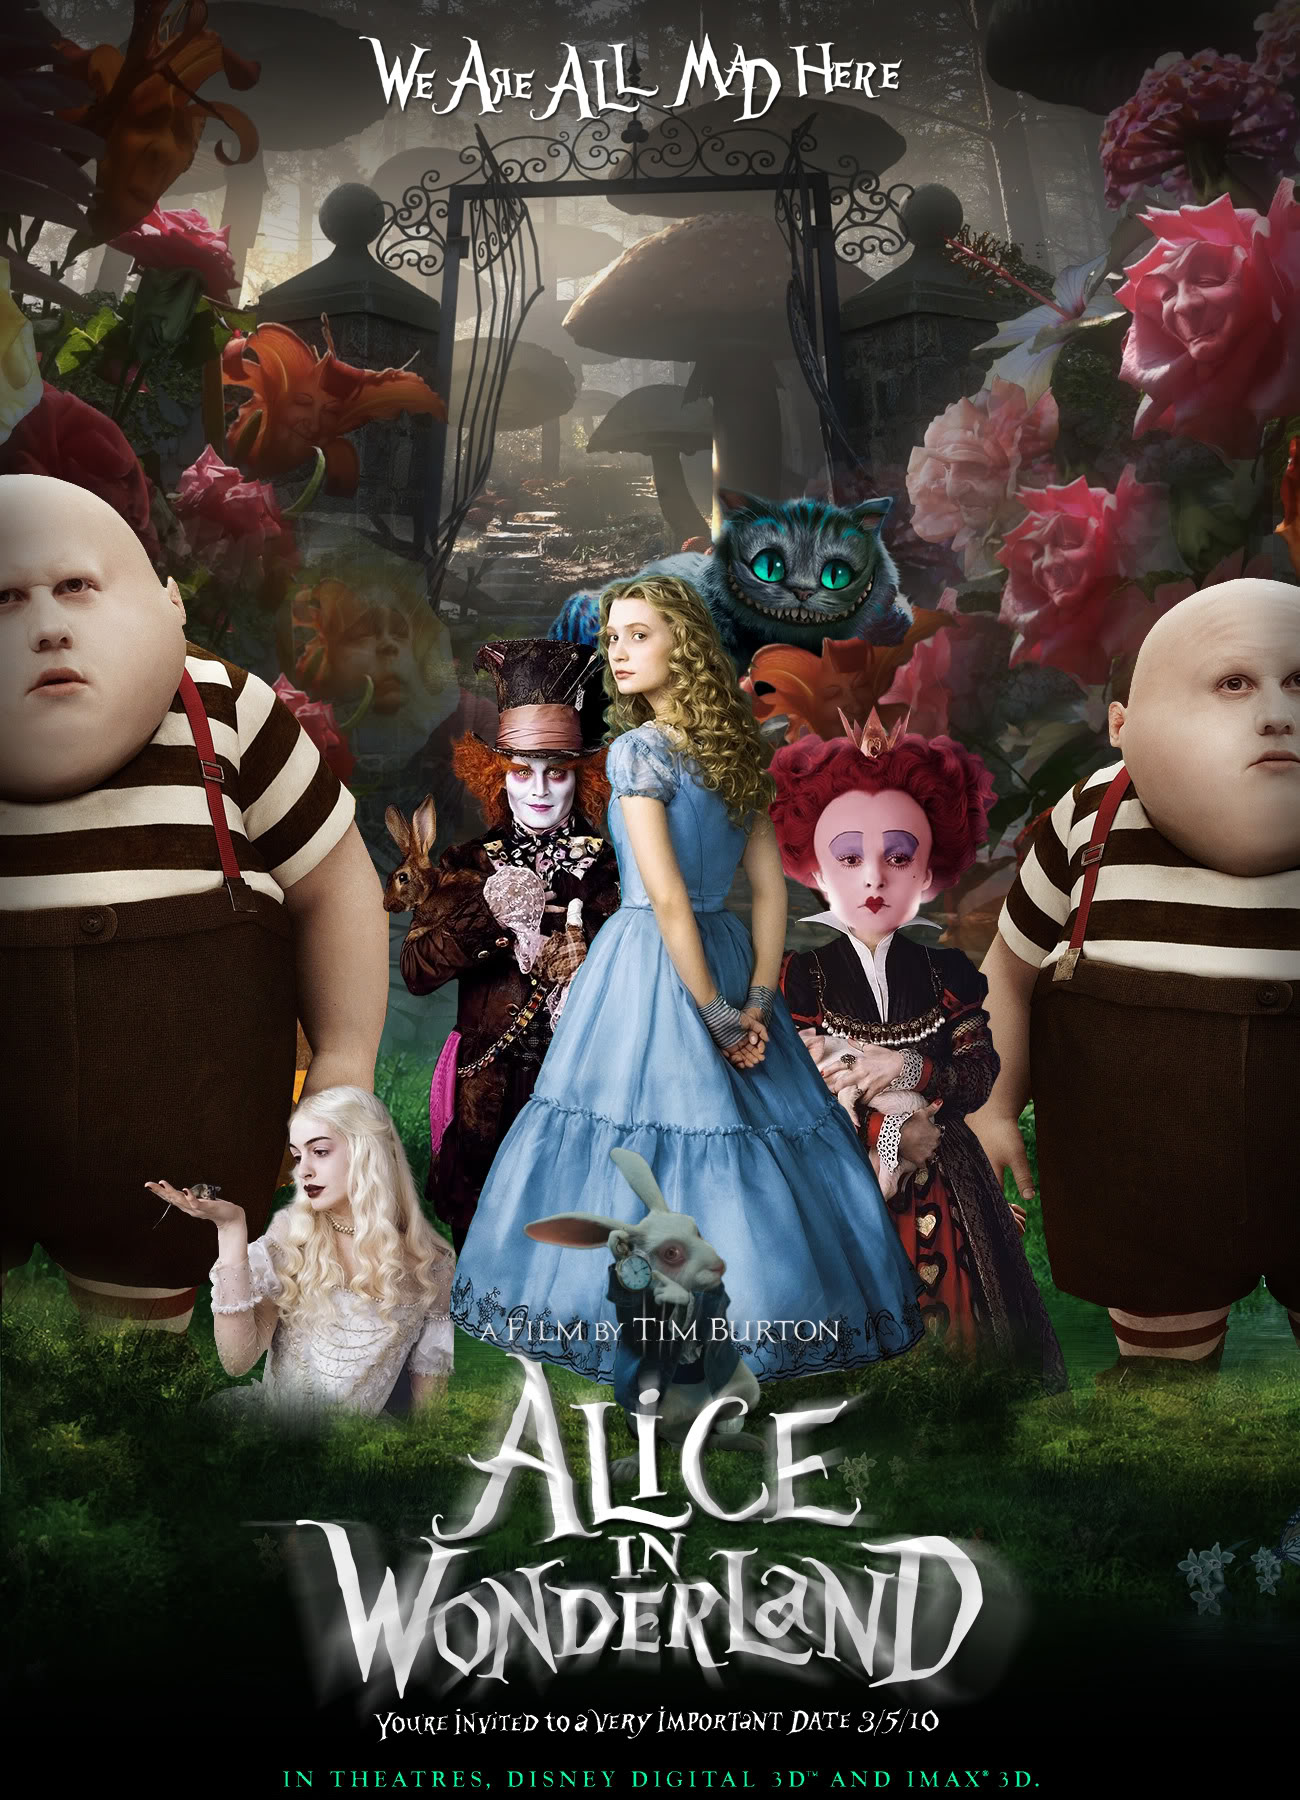 Surprising Facts About Alice in Wonderland Alice in